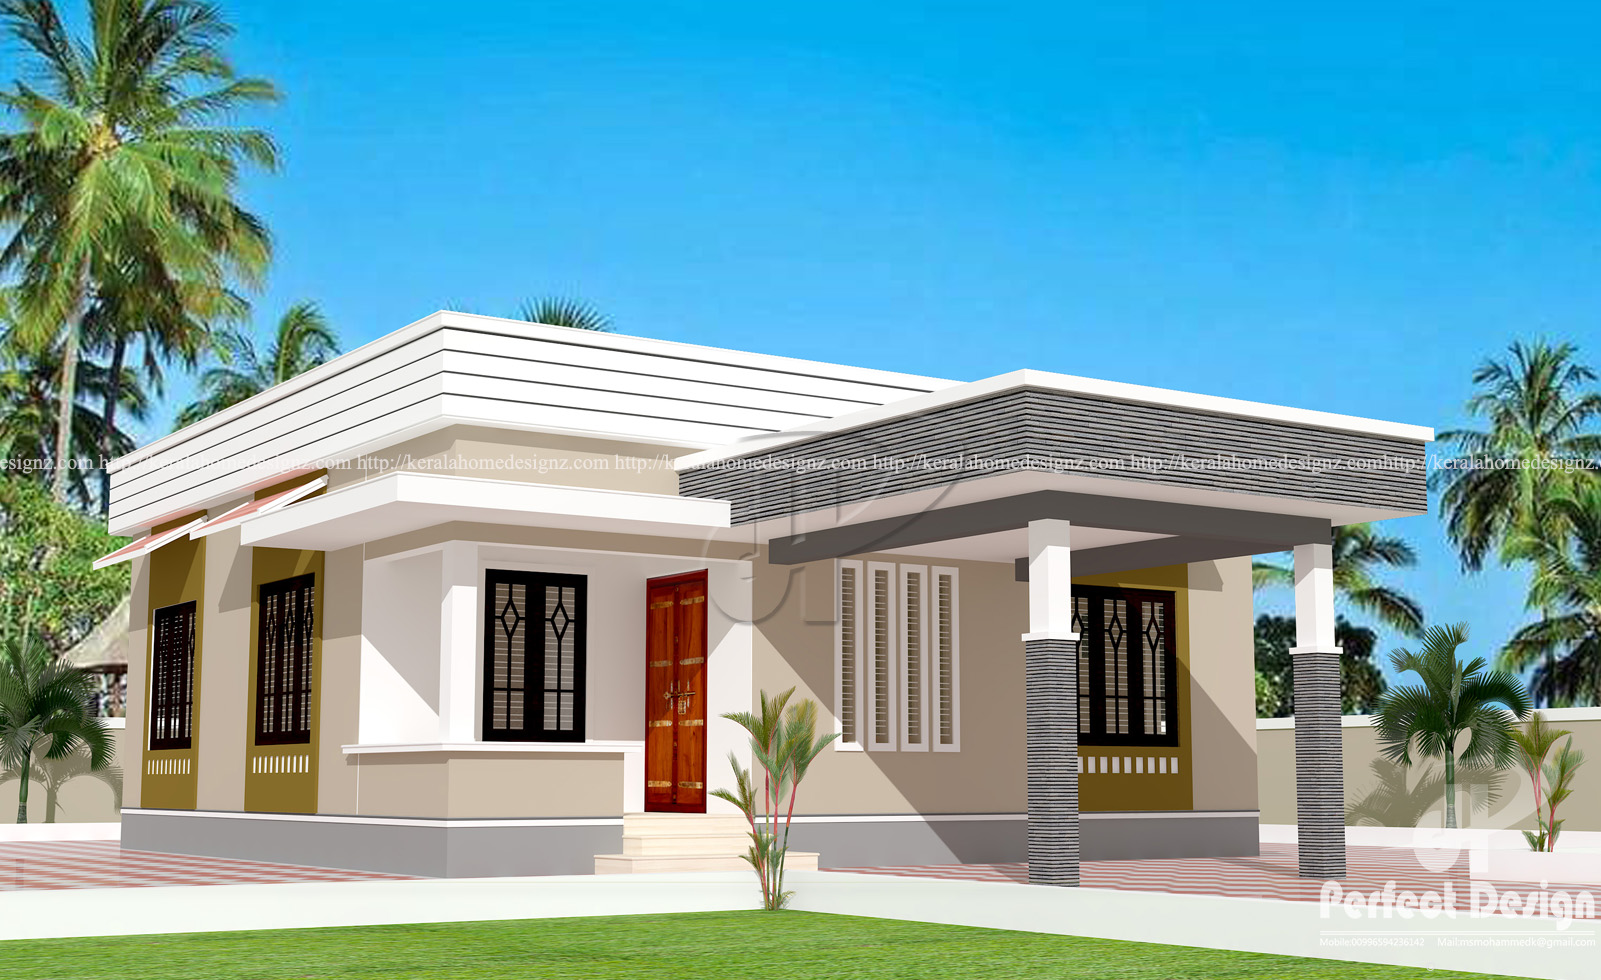 829 sq ft low cost home designs kerala home design for Home designs pics